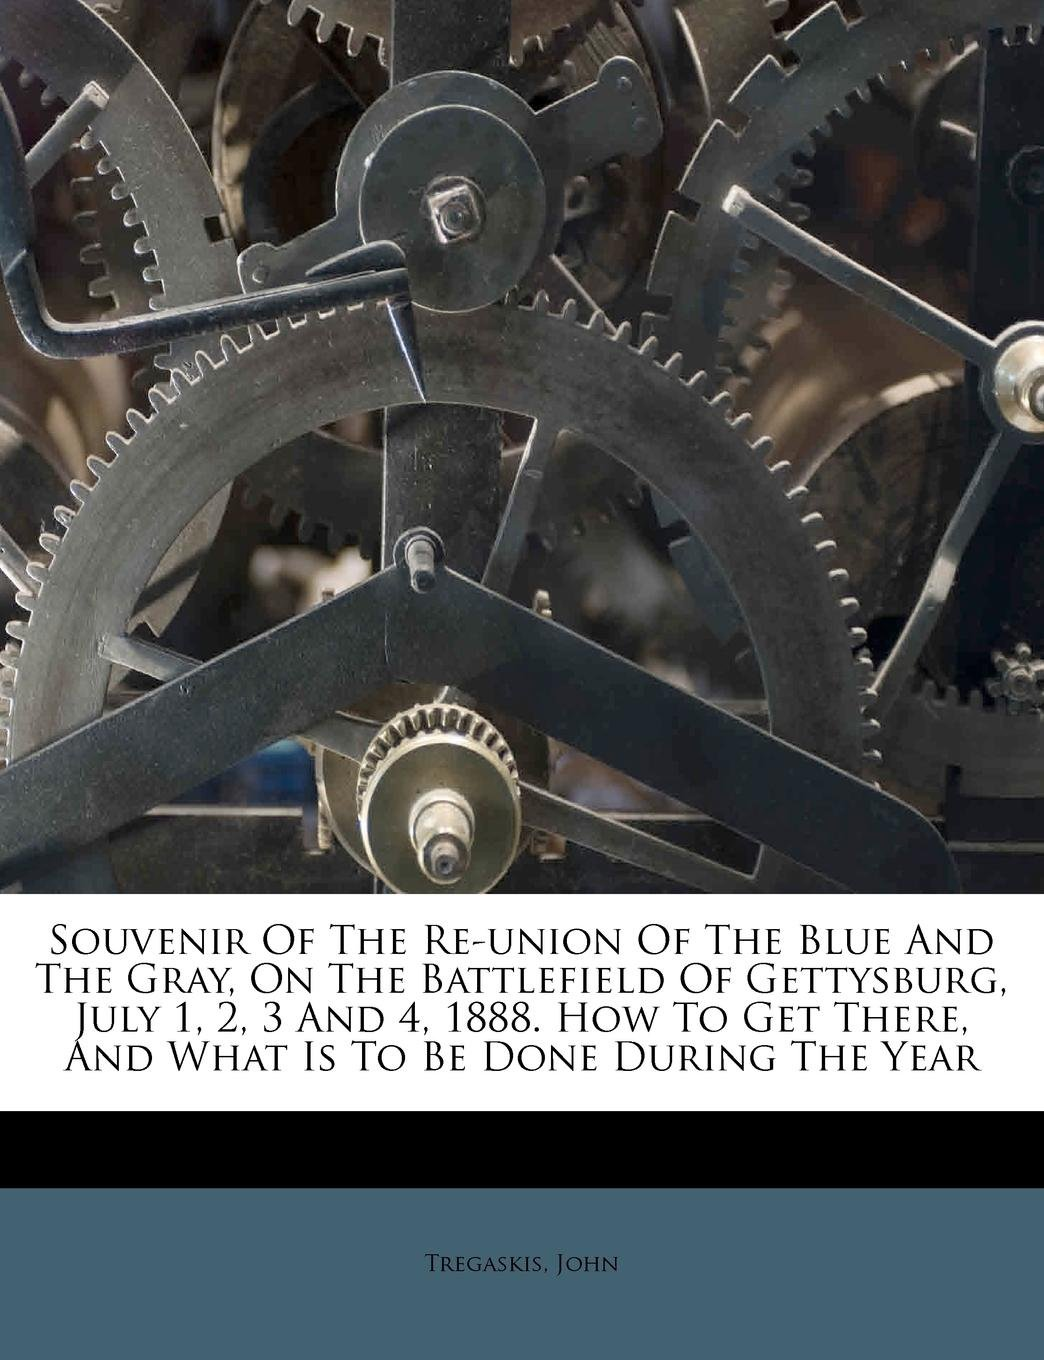 Download Souvenir of the re-union of the blue and the gray, on the battlefield of Gettysburg, July 1, 2, 3 and 4, 1888. How to get there, and what is to be done during the year PDF